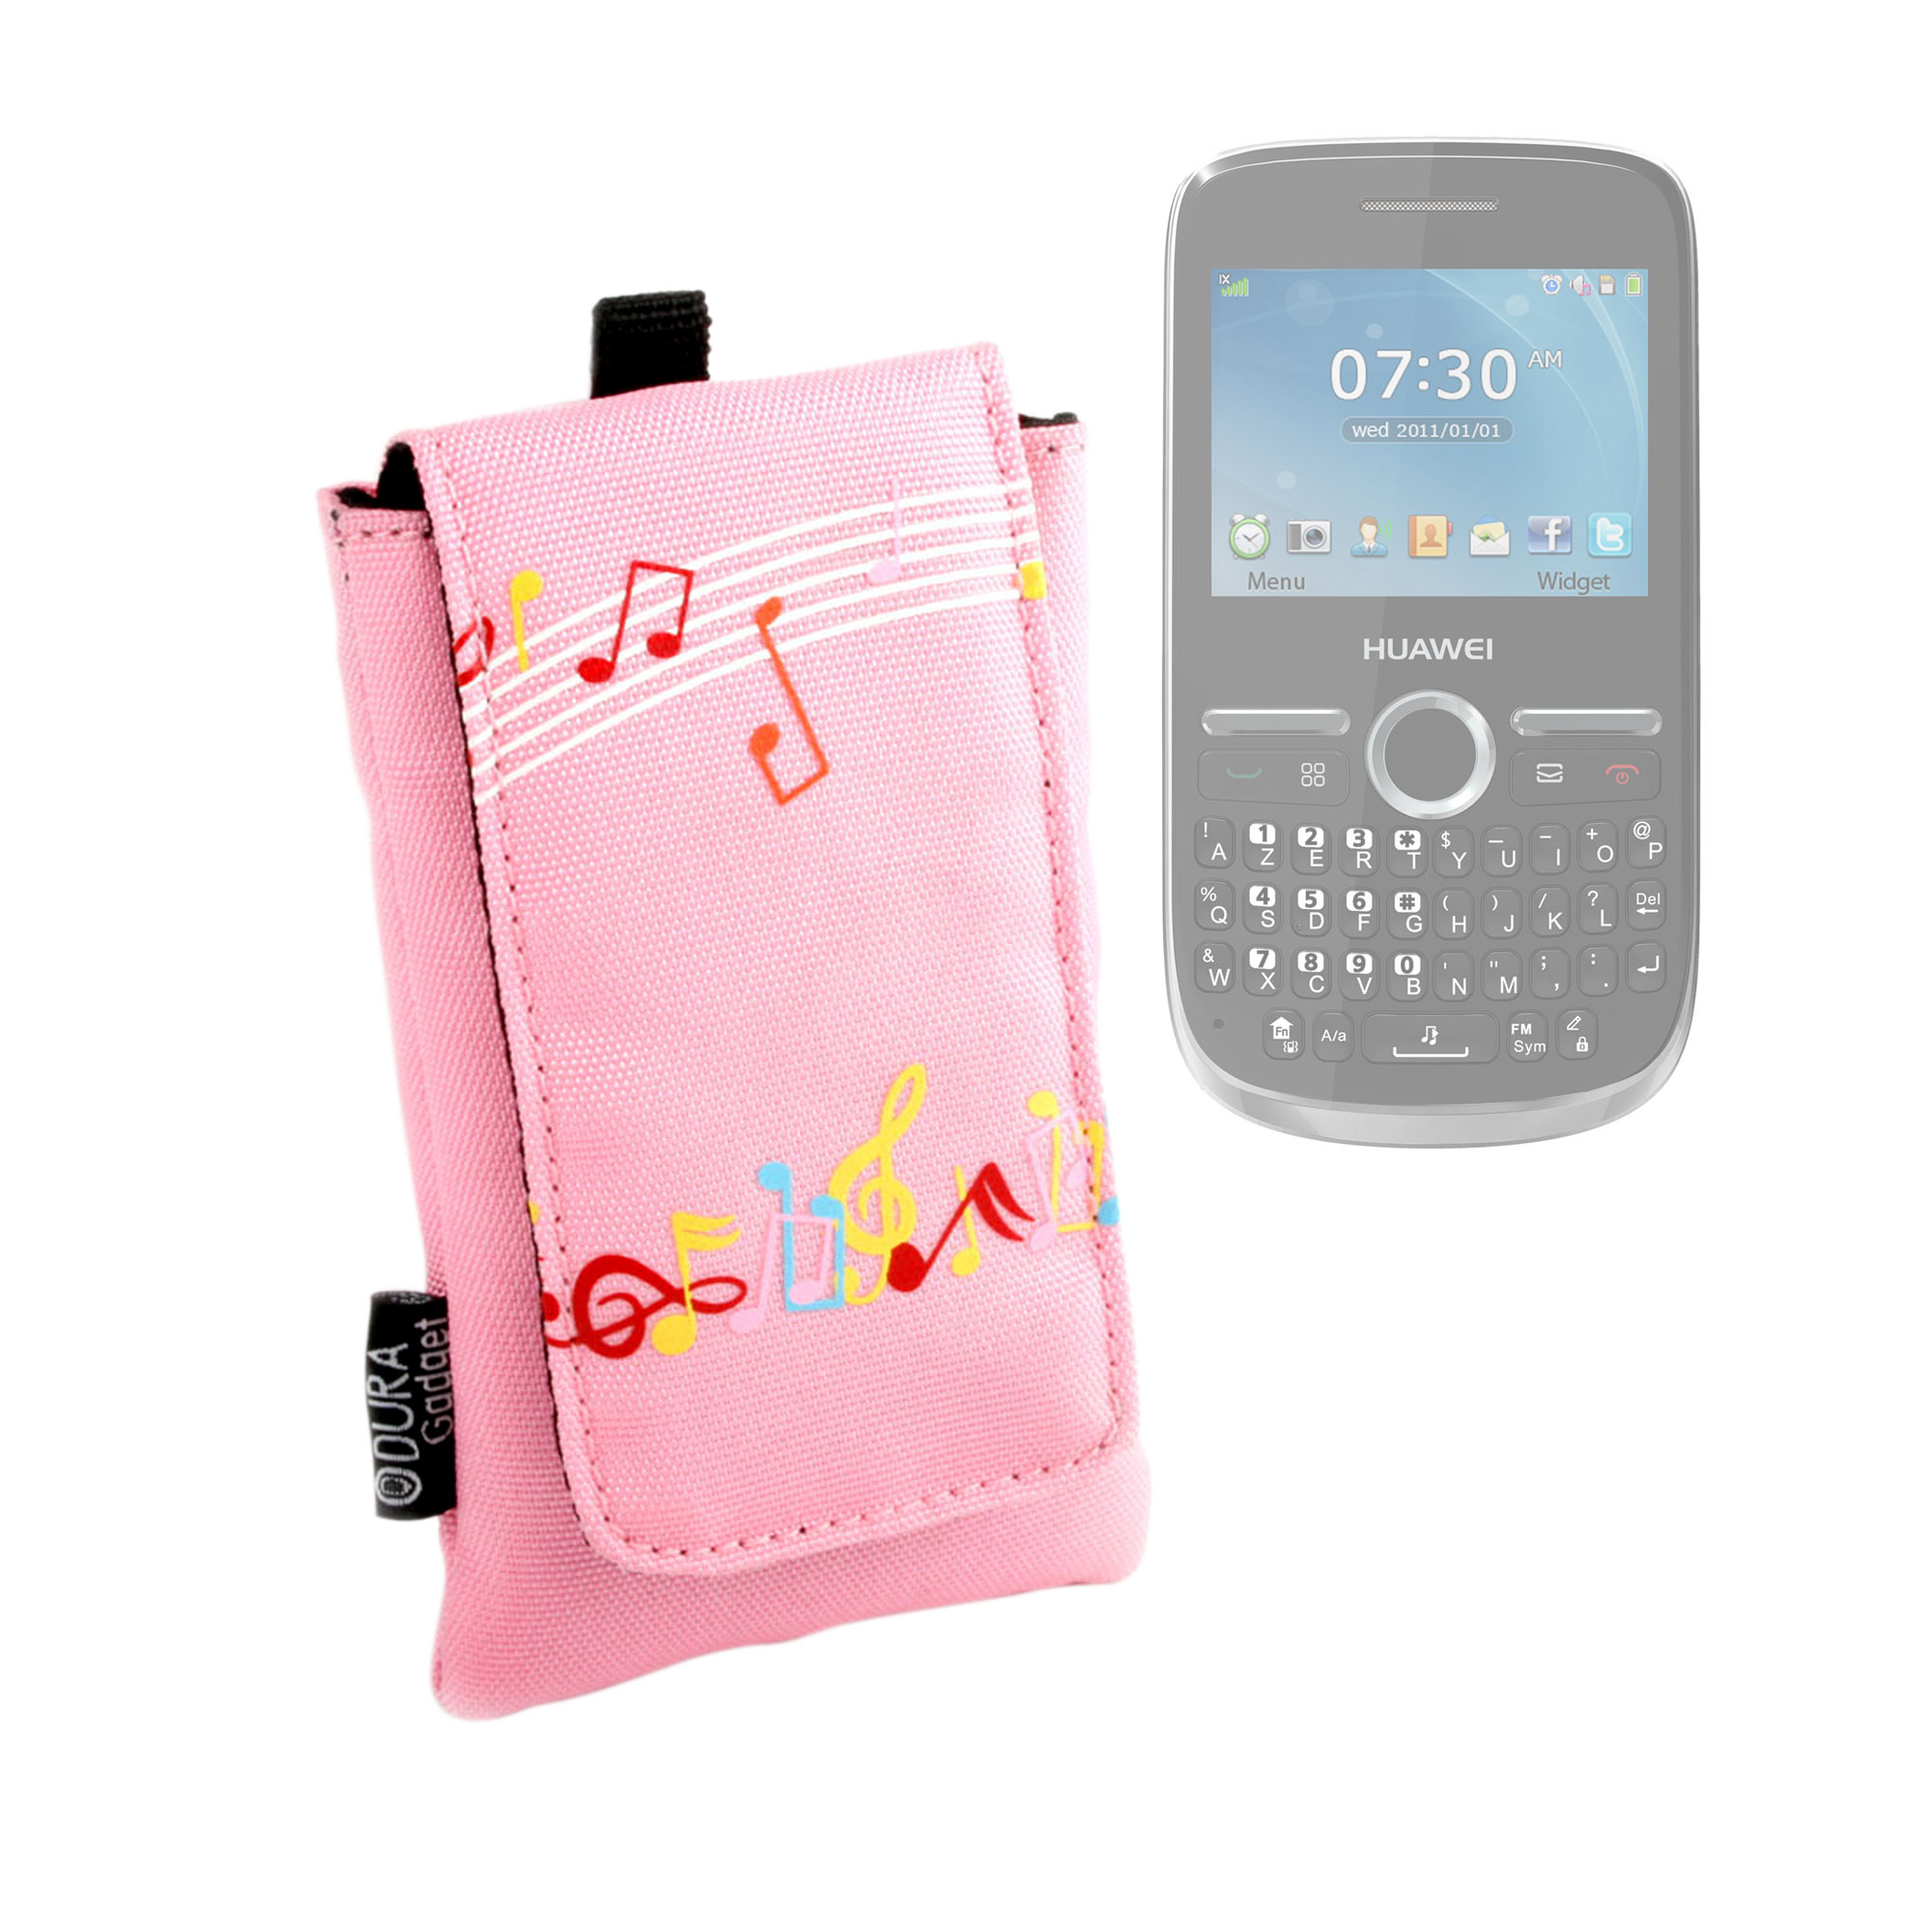 housse pochette tui rose pour t l phone portable smartphone huawei g6608 ebay. Black Bedroom Furniture Sets. Home Design Ideas